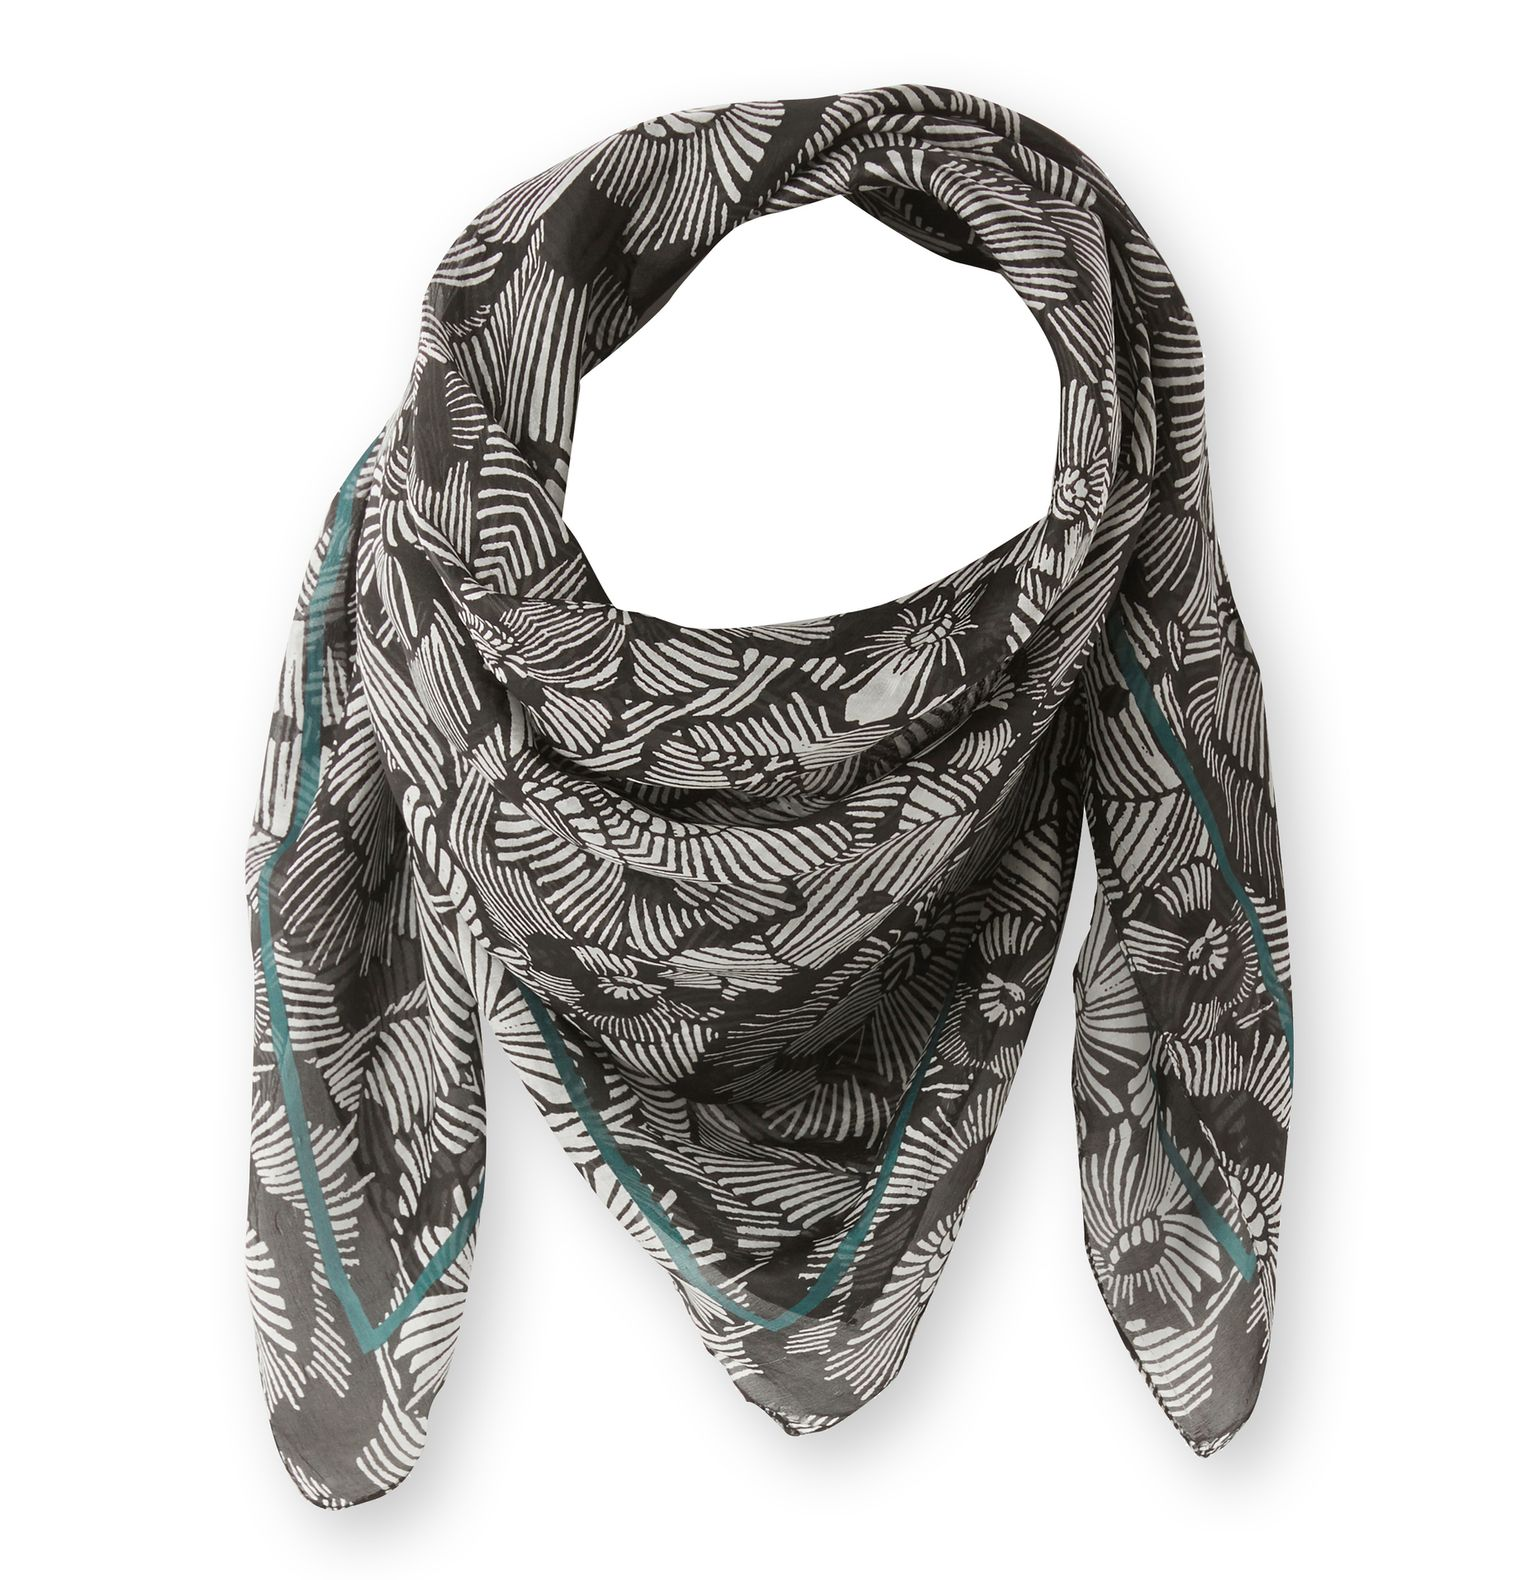 Foulard soie femme graphique et fleuri